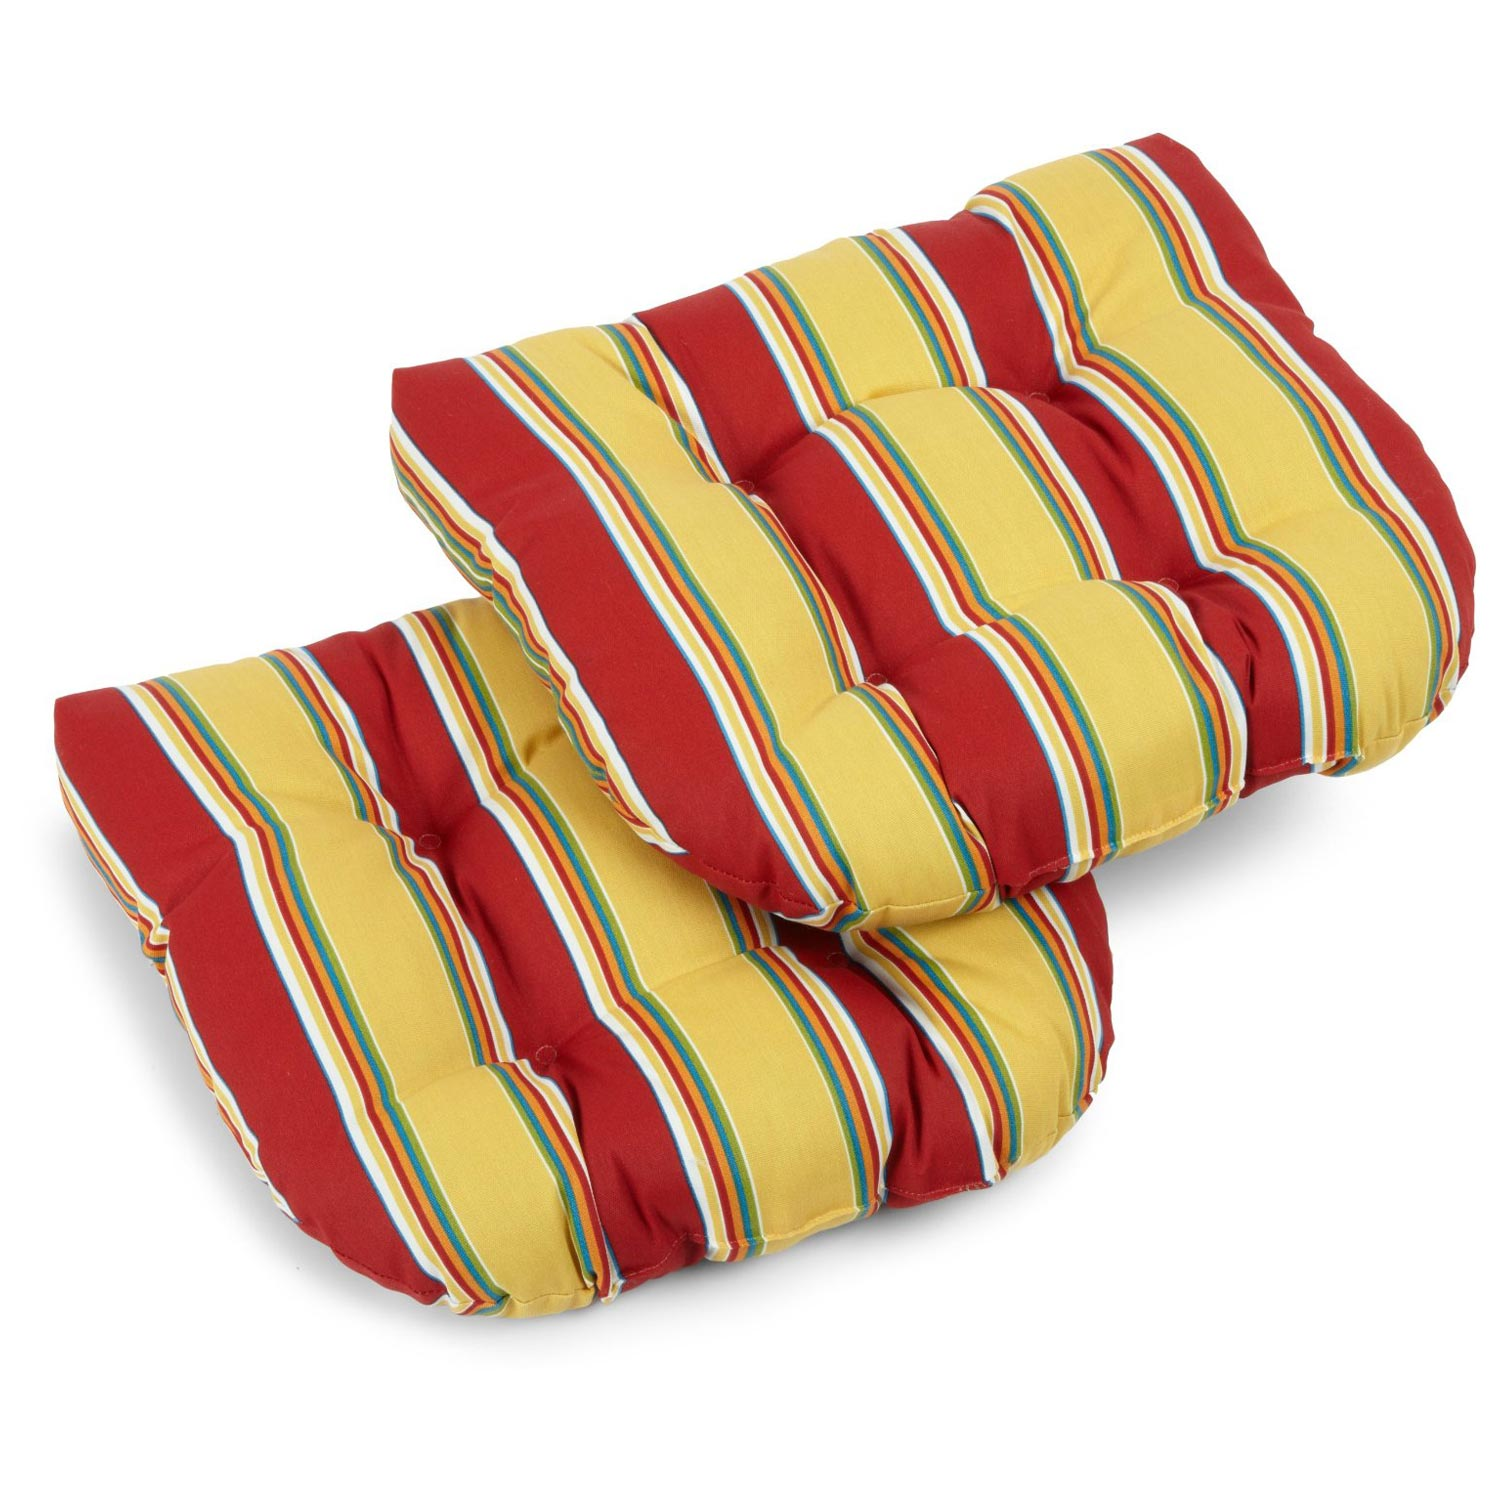 U Shaped Patio Chair Cushion All Weather Patterned Set